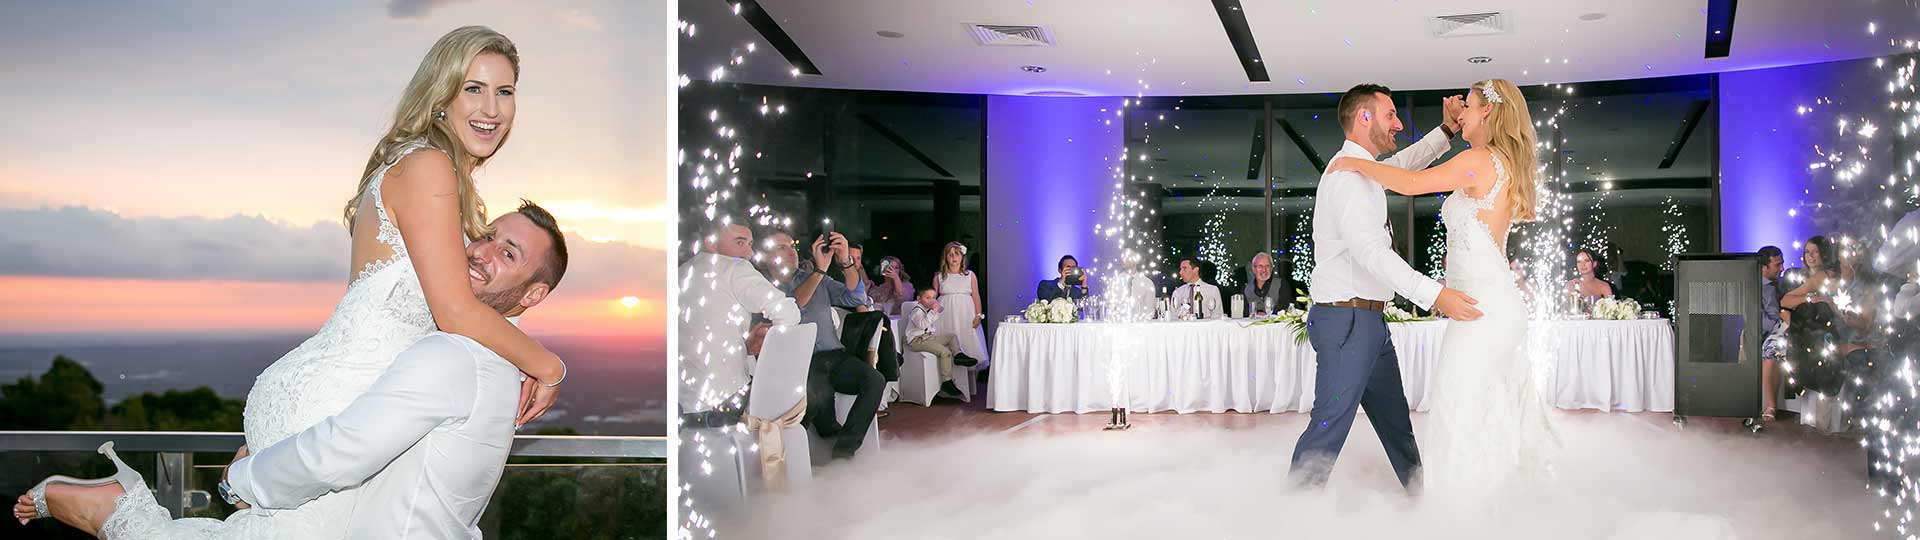 dandenong ranges wedding reception venues